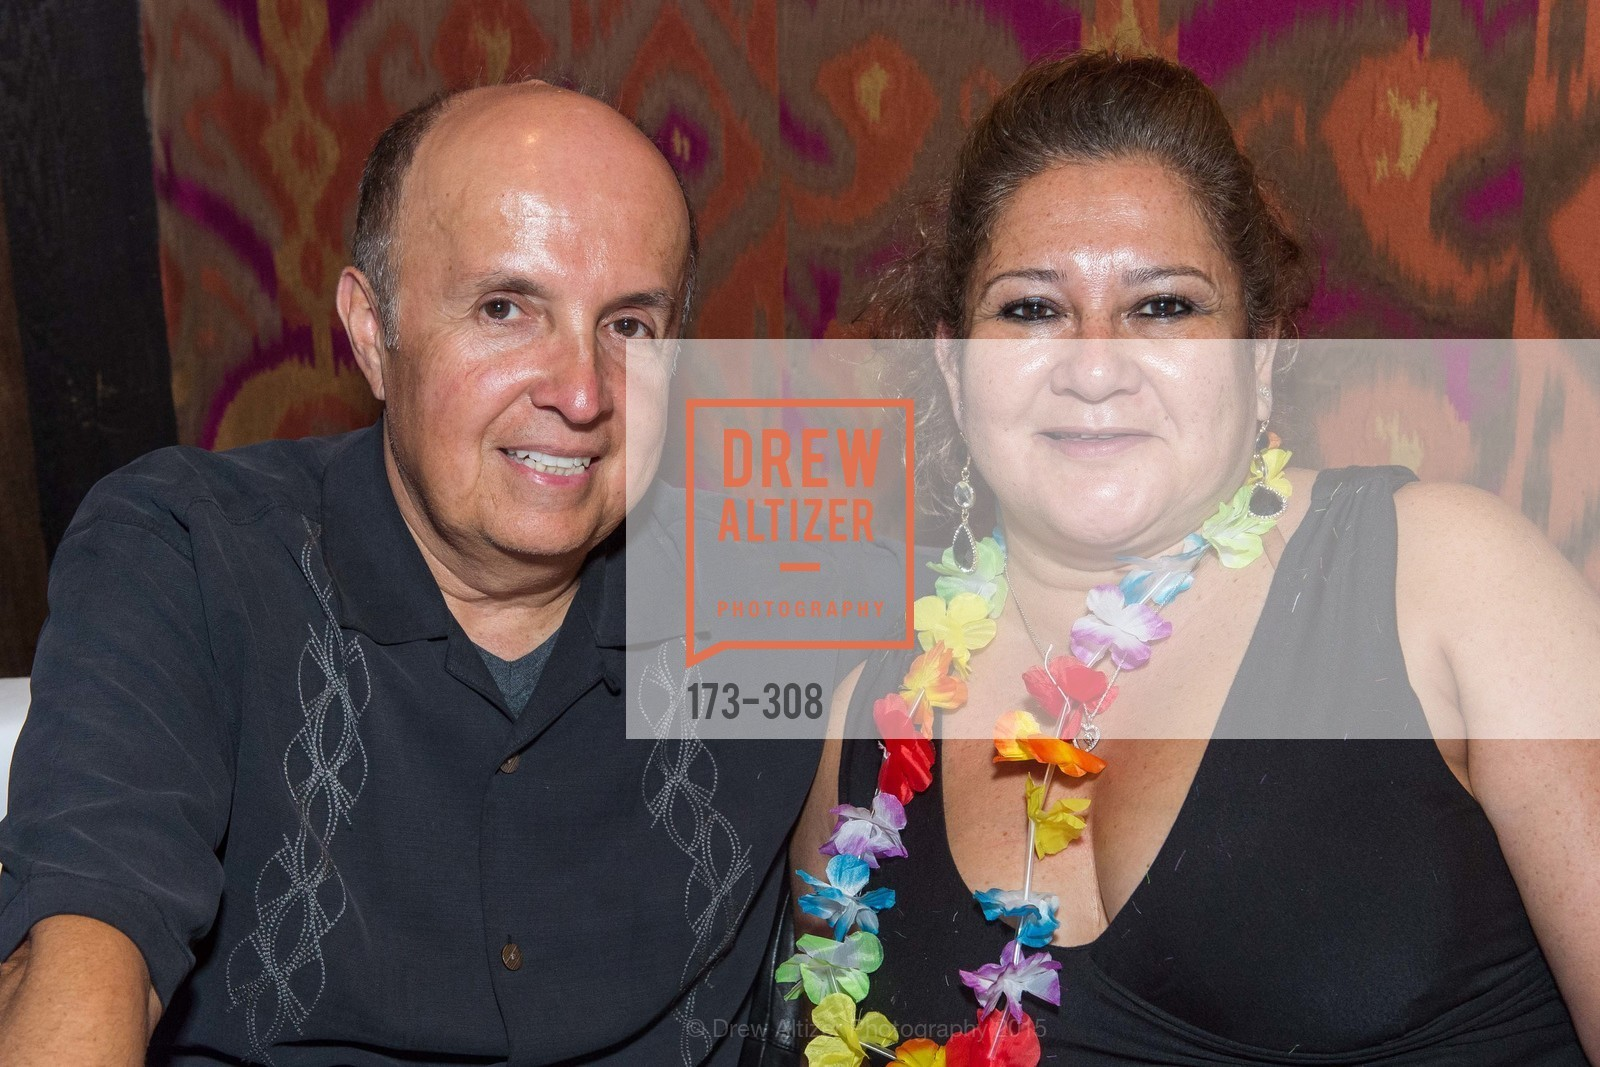 Mike Annino, Tonga Room & Hurricane Bar Celebrates 70 Years of Tiki Glory, Fairmont, September 23rd, 2015,Drew Altizer, Drew Altizer Photography, full-service agency, private events, San Francisco photographer, photographer california